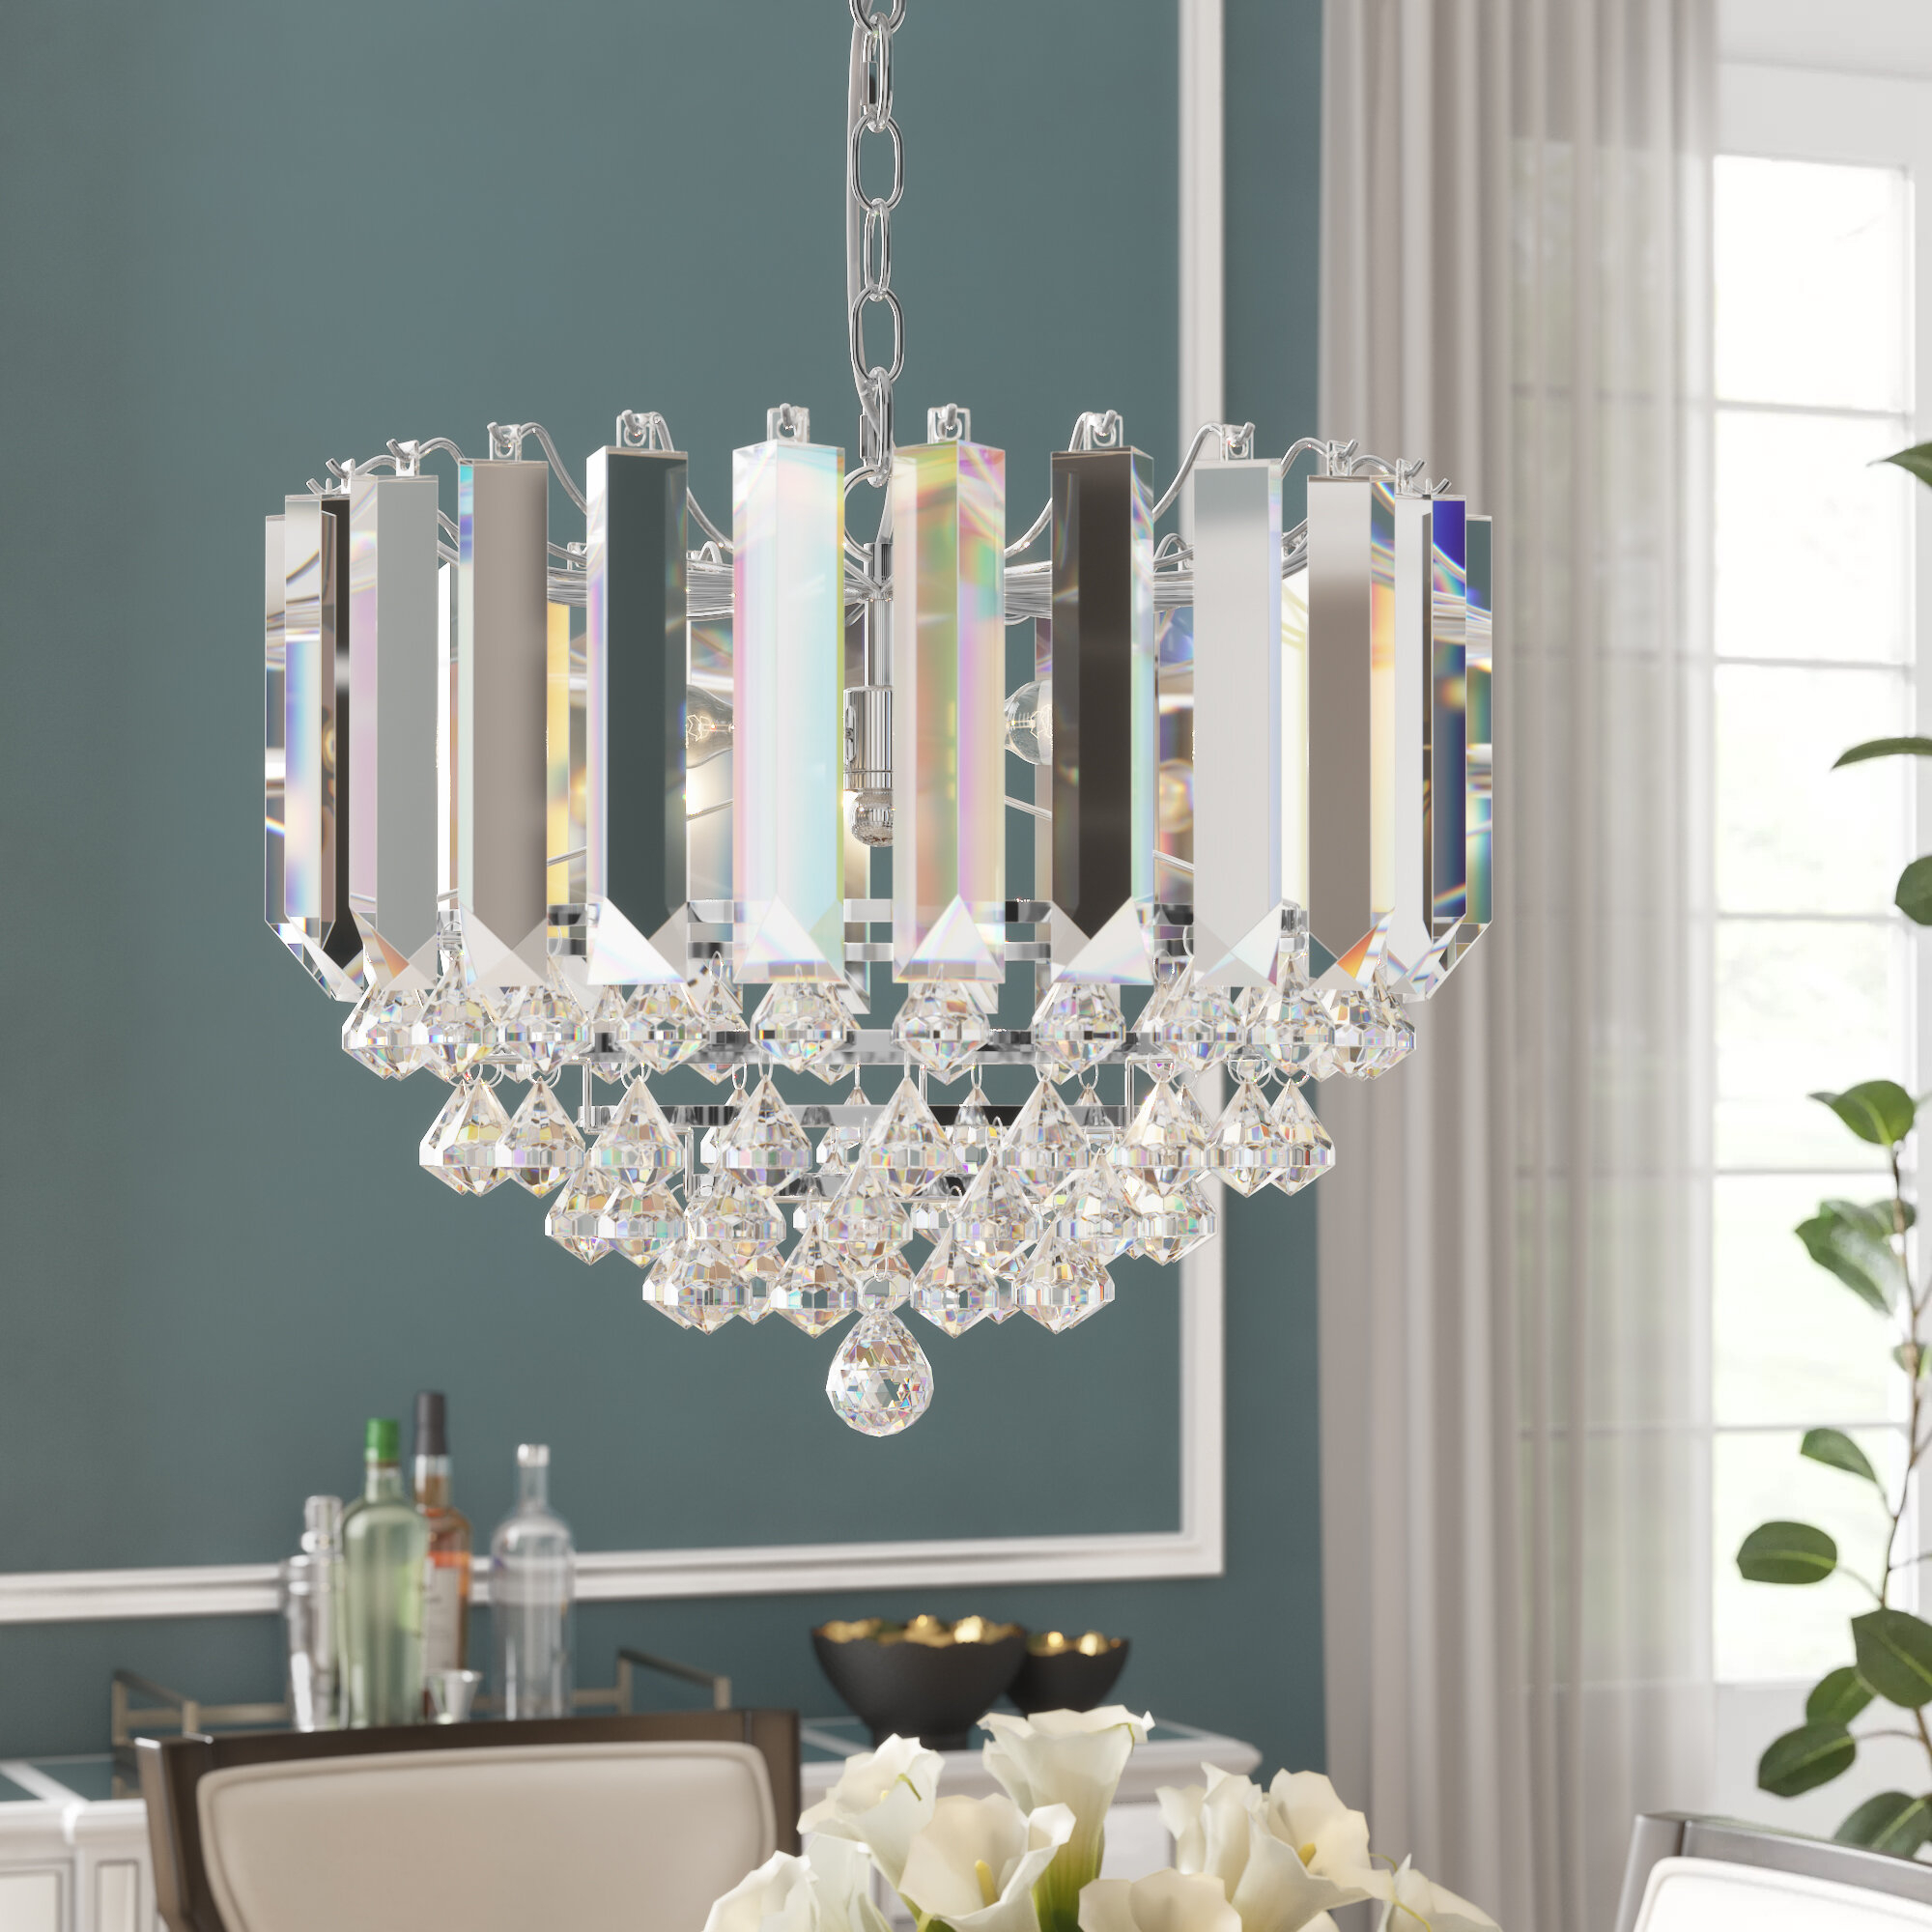 Birchley 2 Light Crystal Chandelier Throughout Benedetto 5 Light Crystal Chandeliers (View 18 of 30)